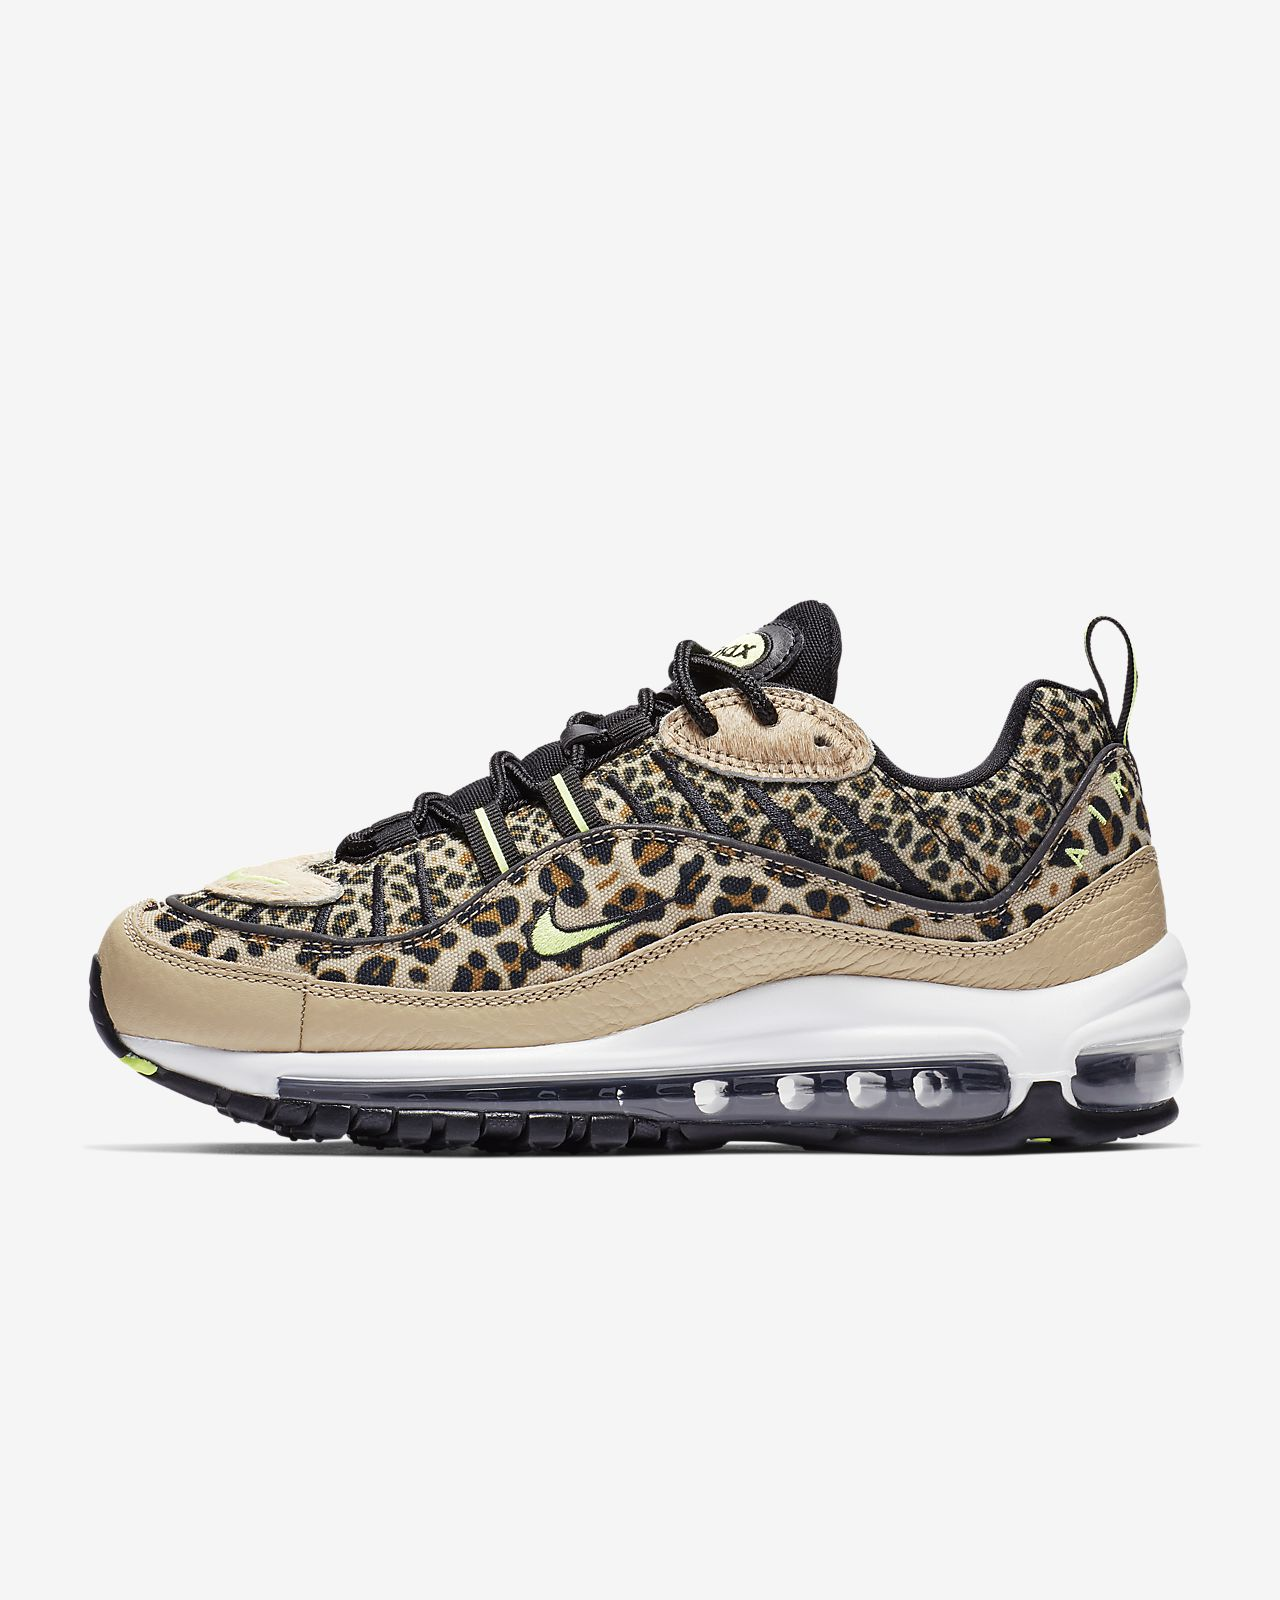 the latest a2915 c753f ... Chaussure Nike Air Max 98 Premium Animal pour Femme